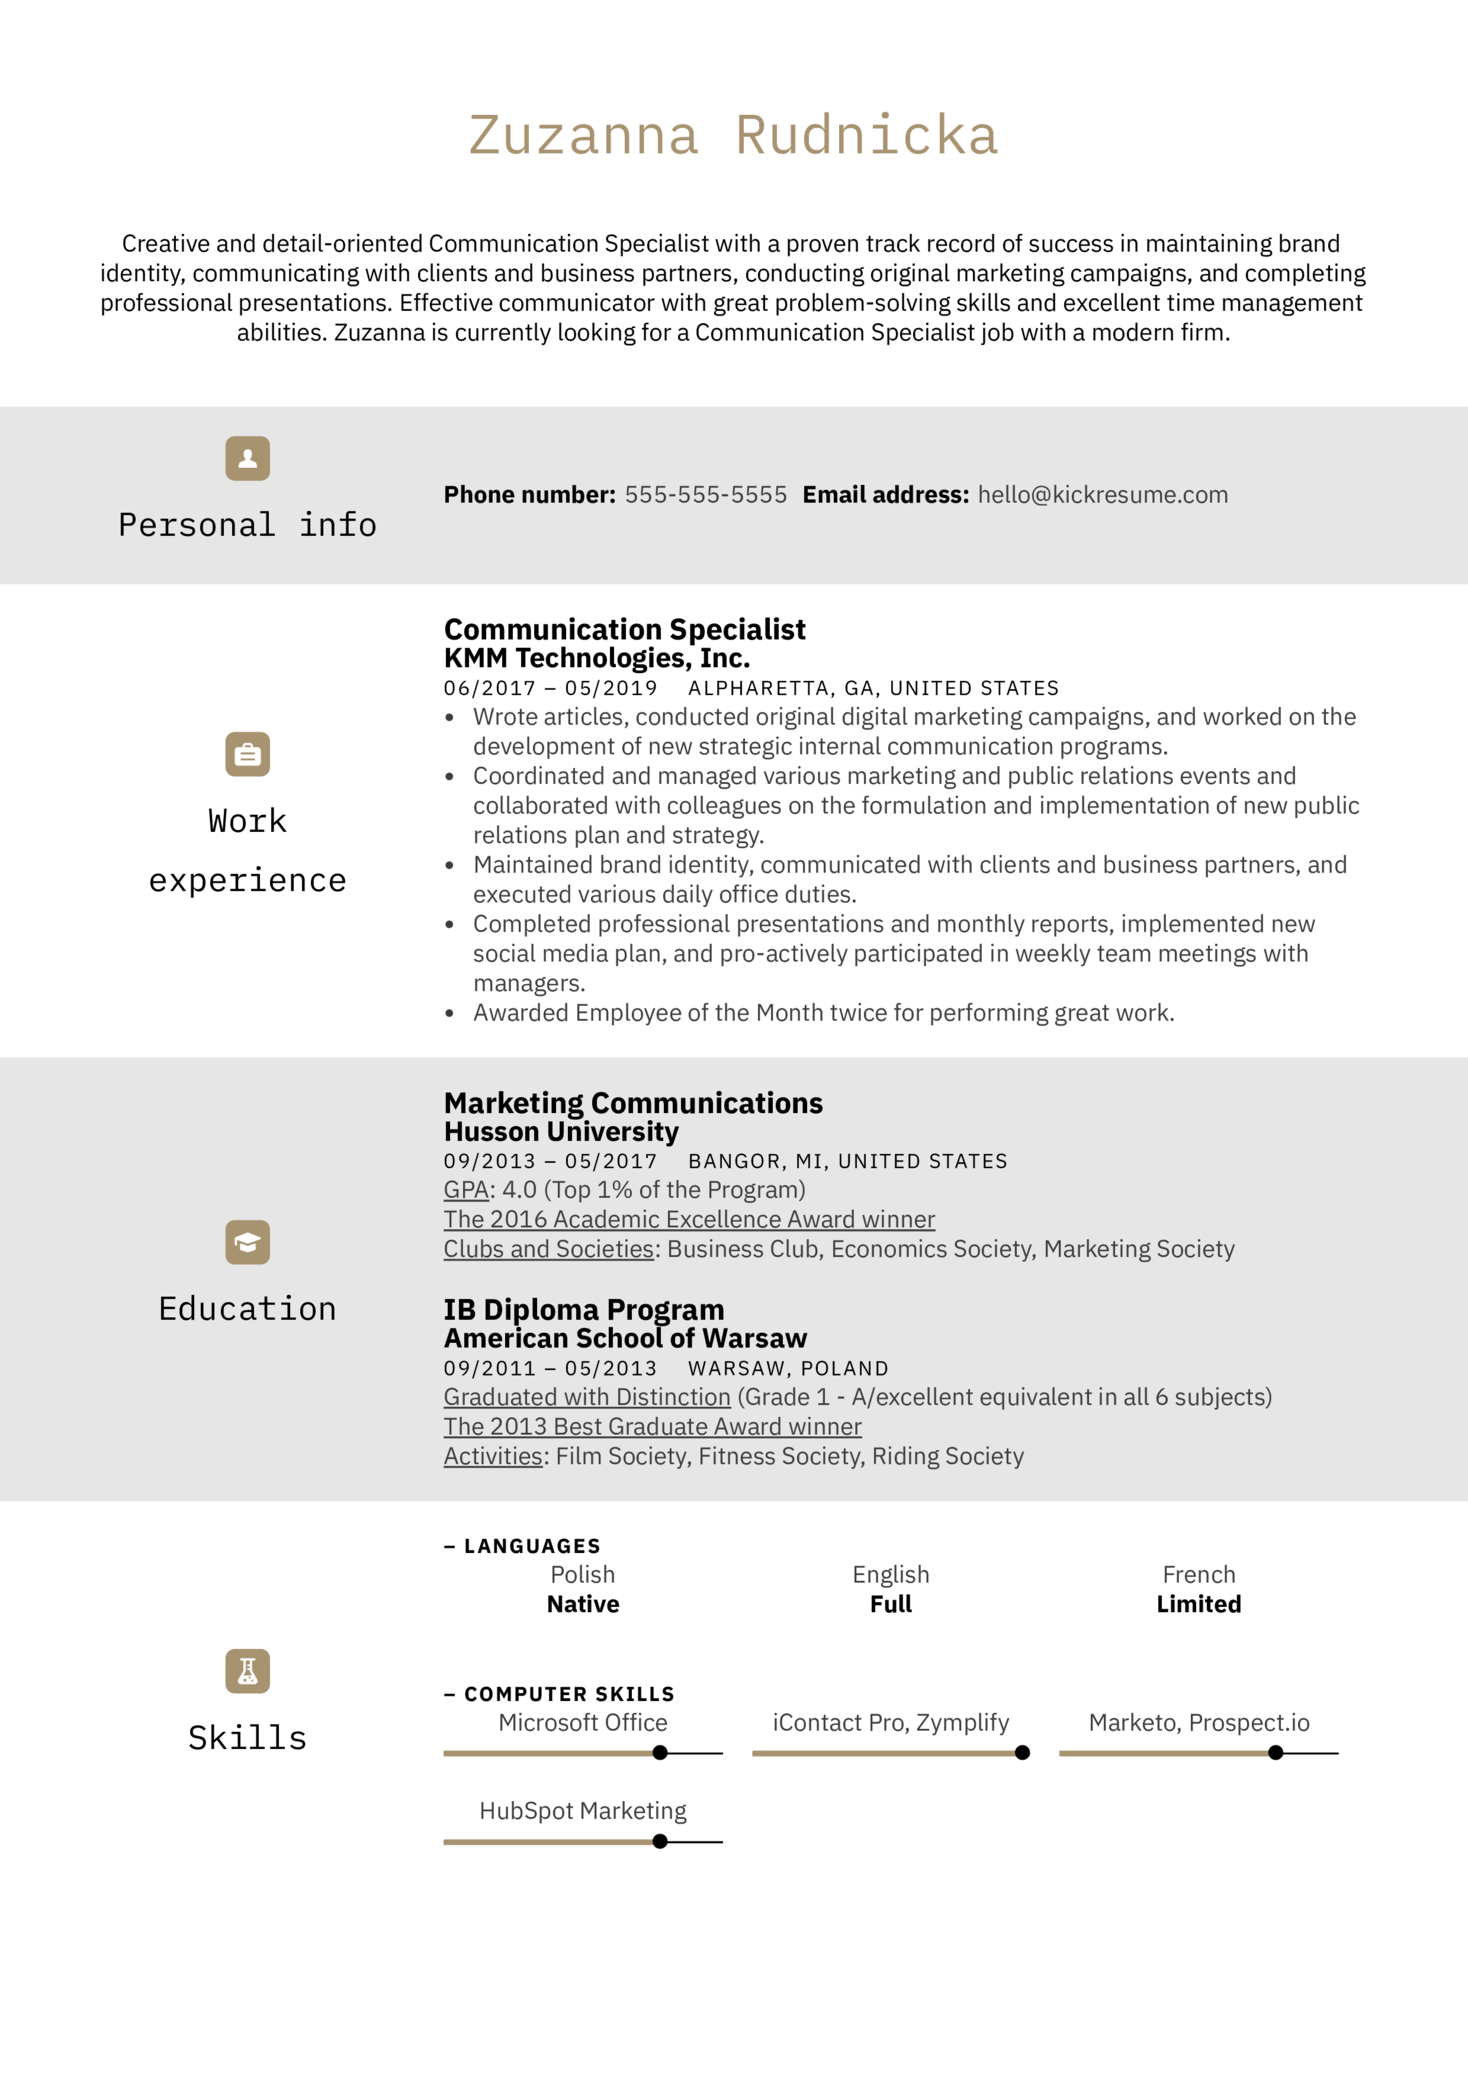 Communication Specialist Resume Sample (parte 1)